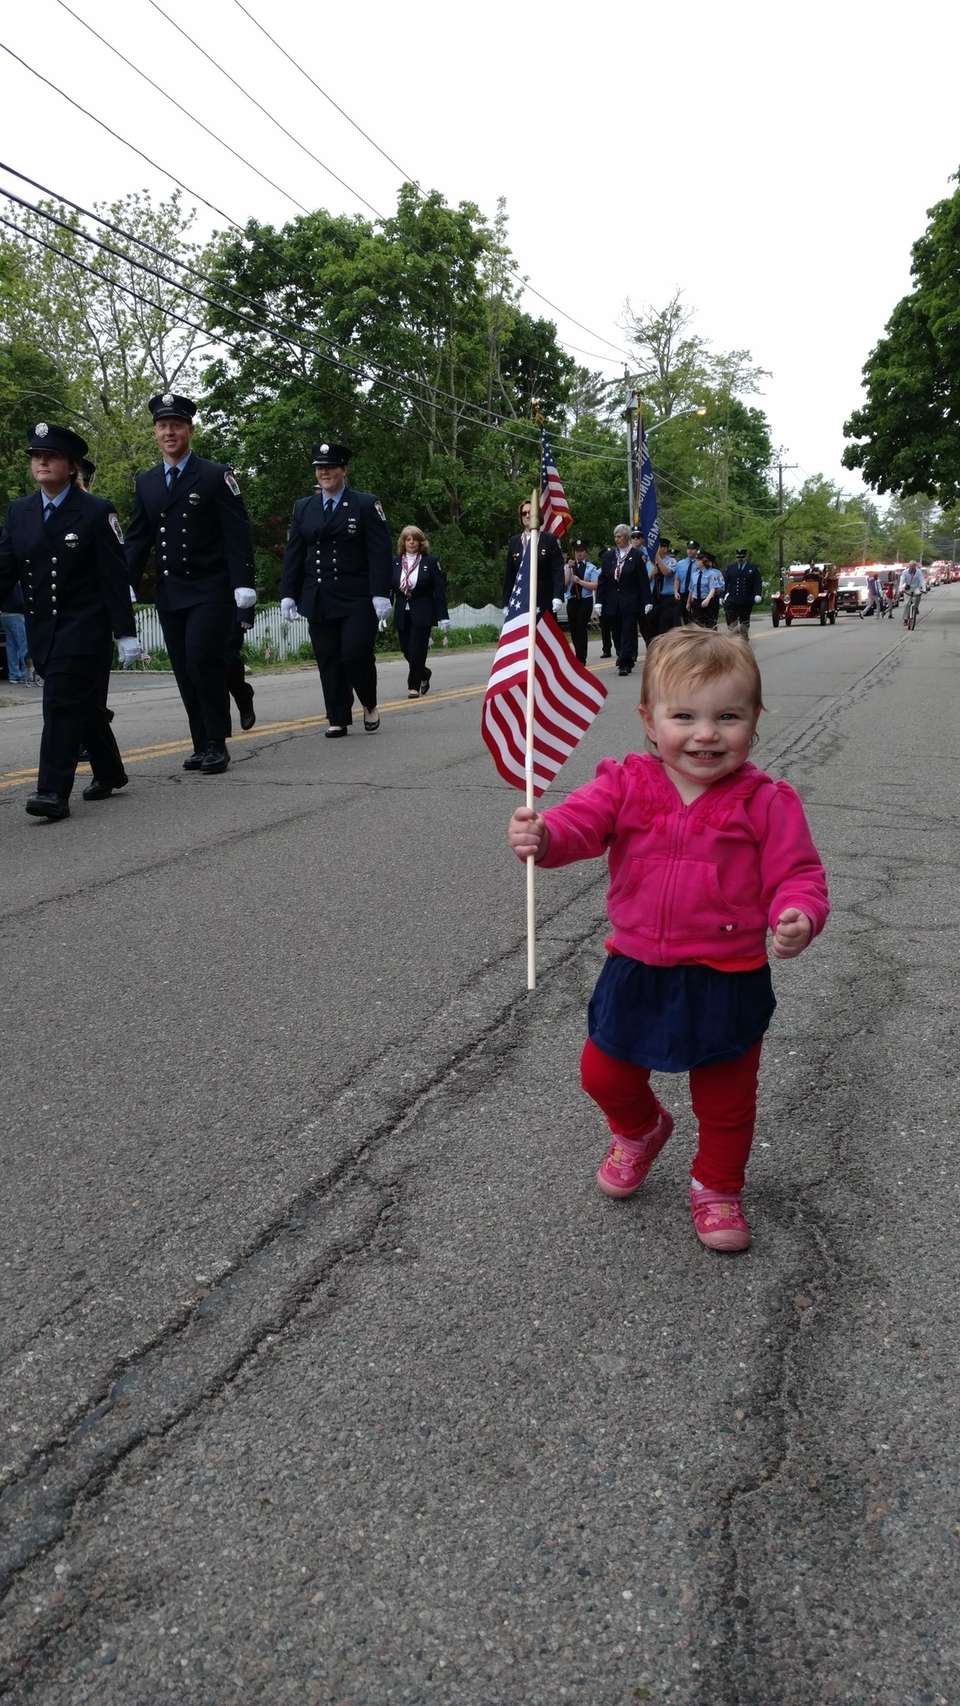 Casey Booth, age 1, marching on the sidelines